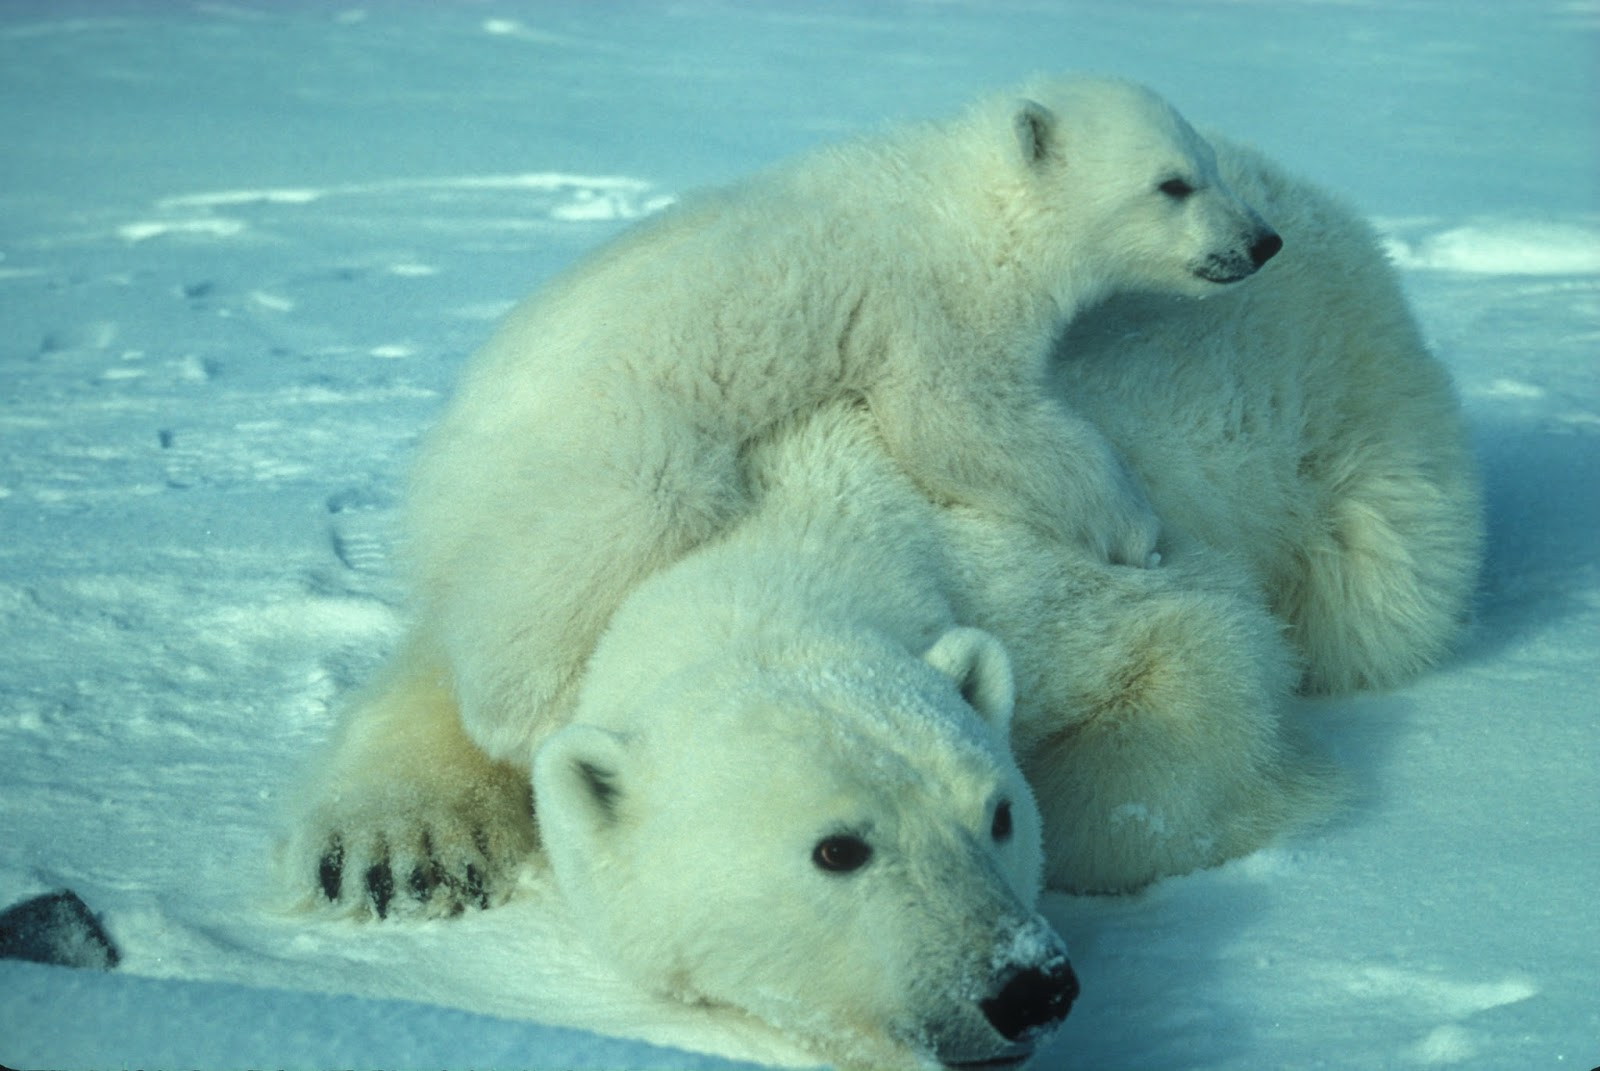 Picture of a mother and baby polar bear.